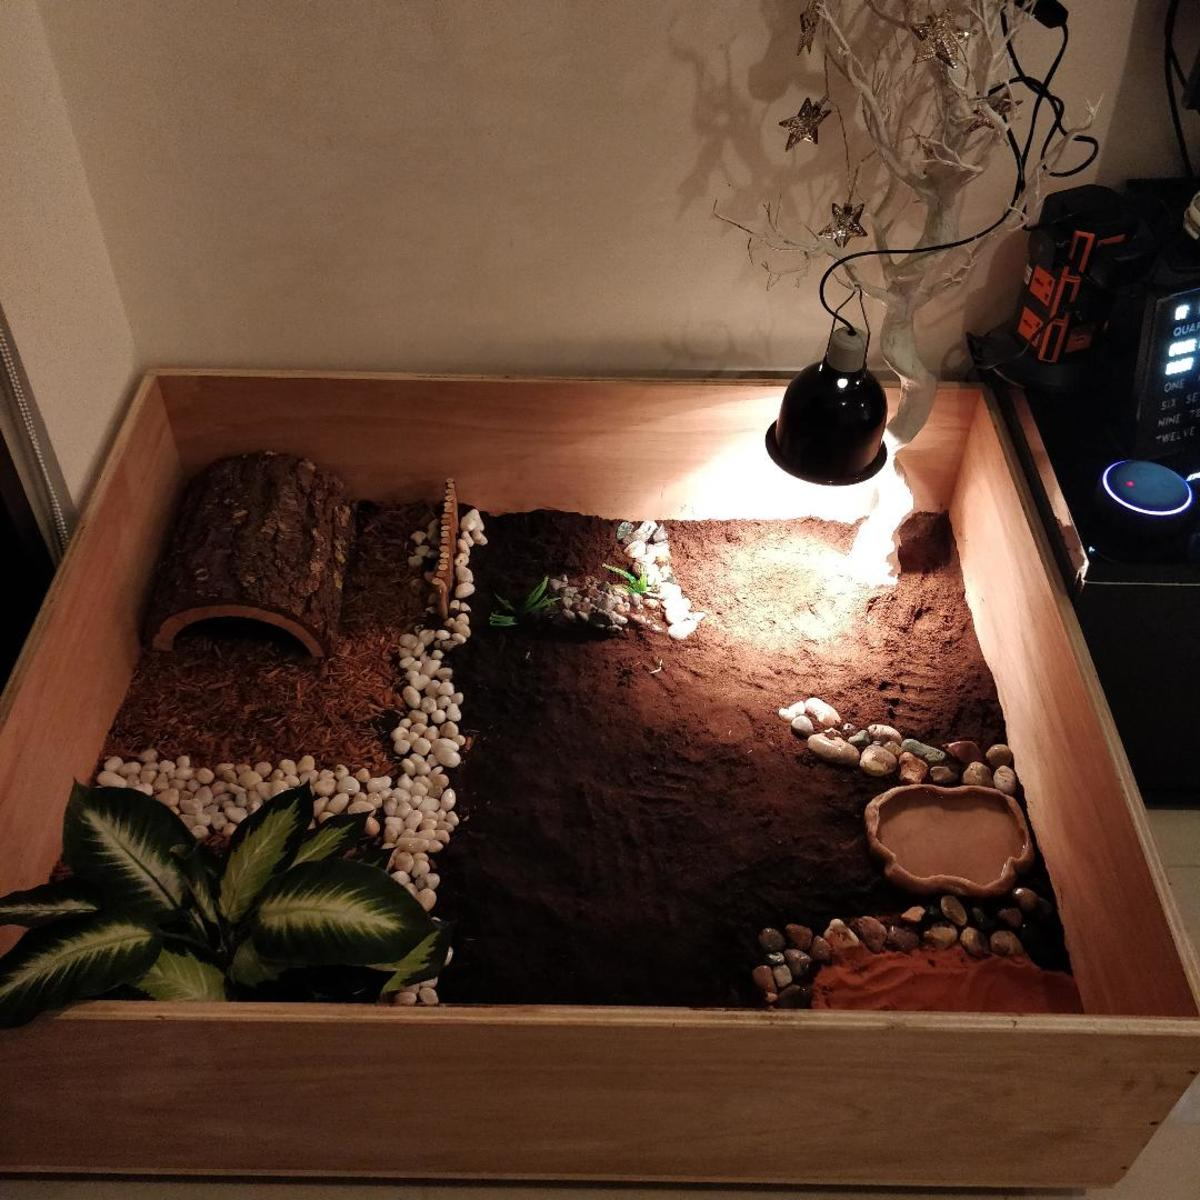 How to Build the Best Enclosure for Your Greek Tortoise